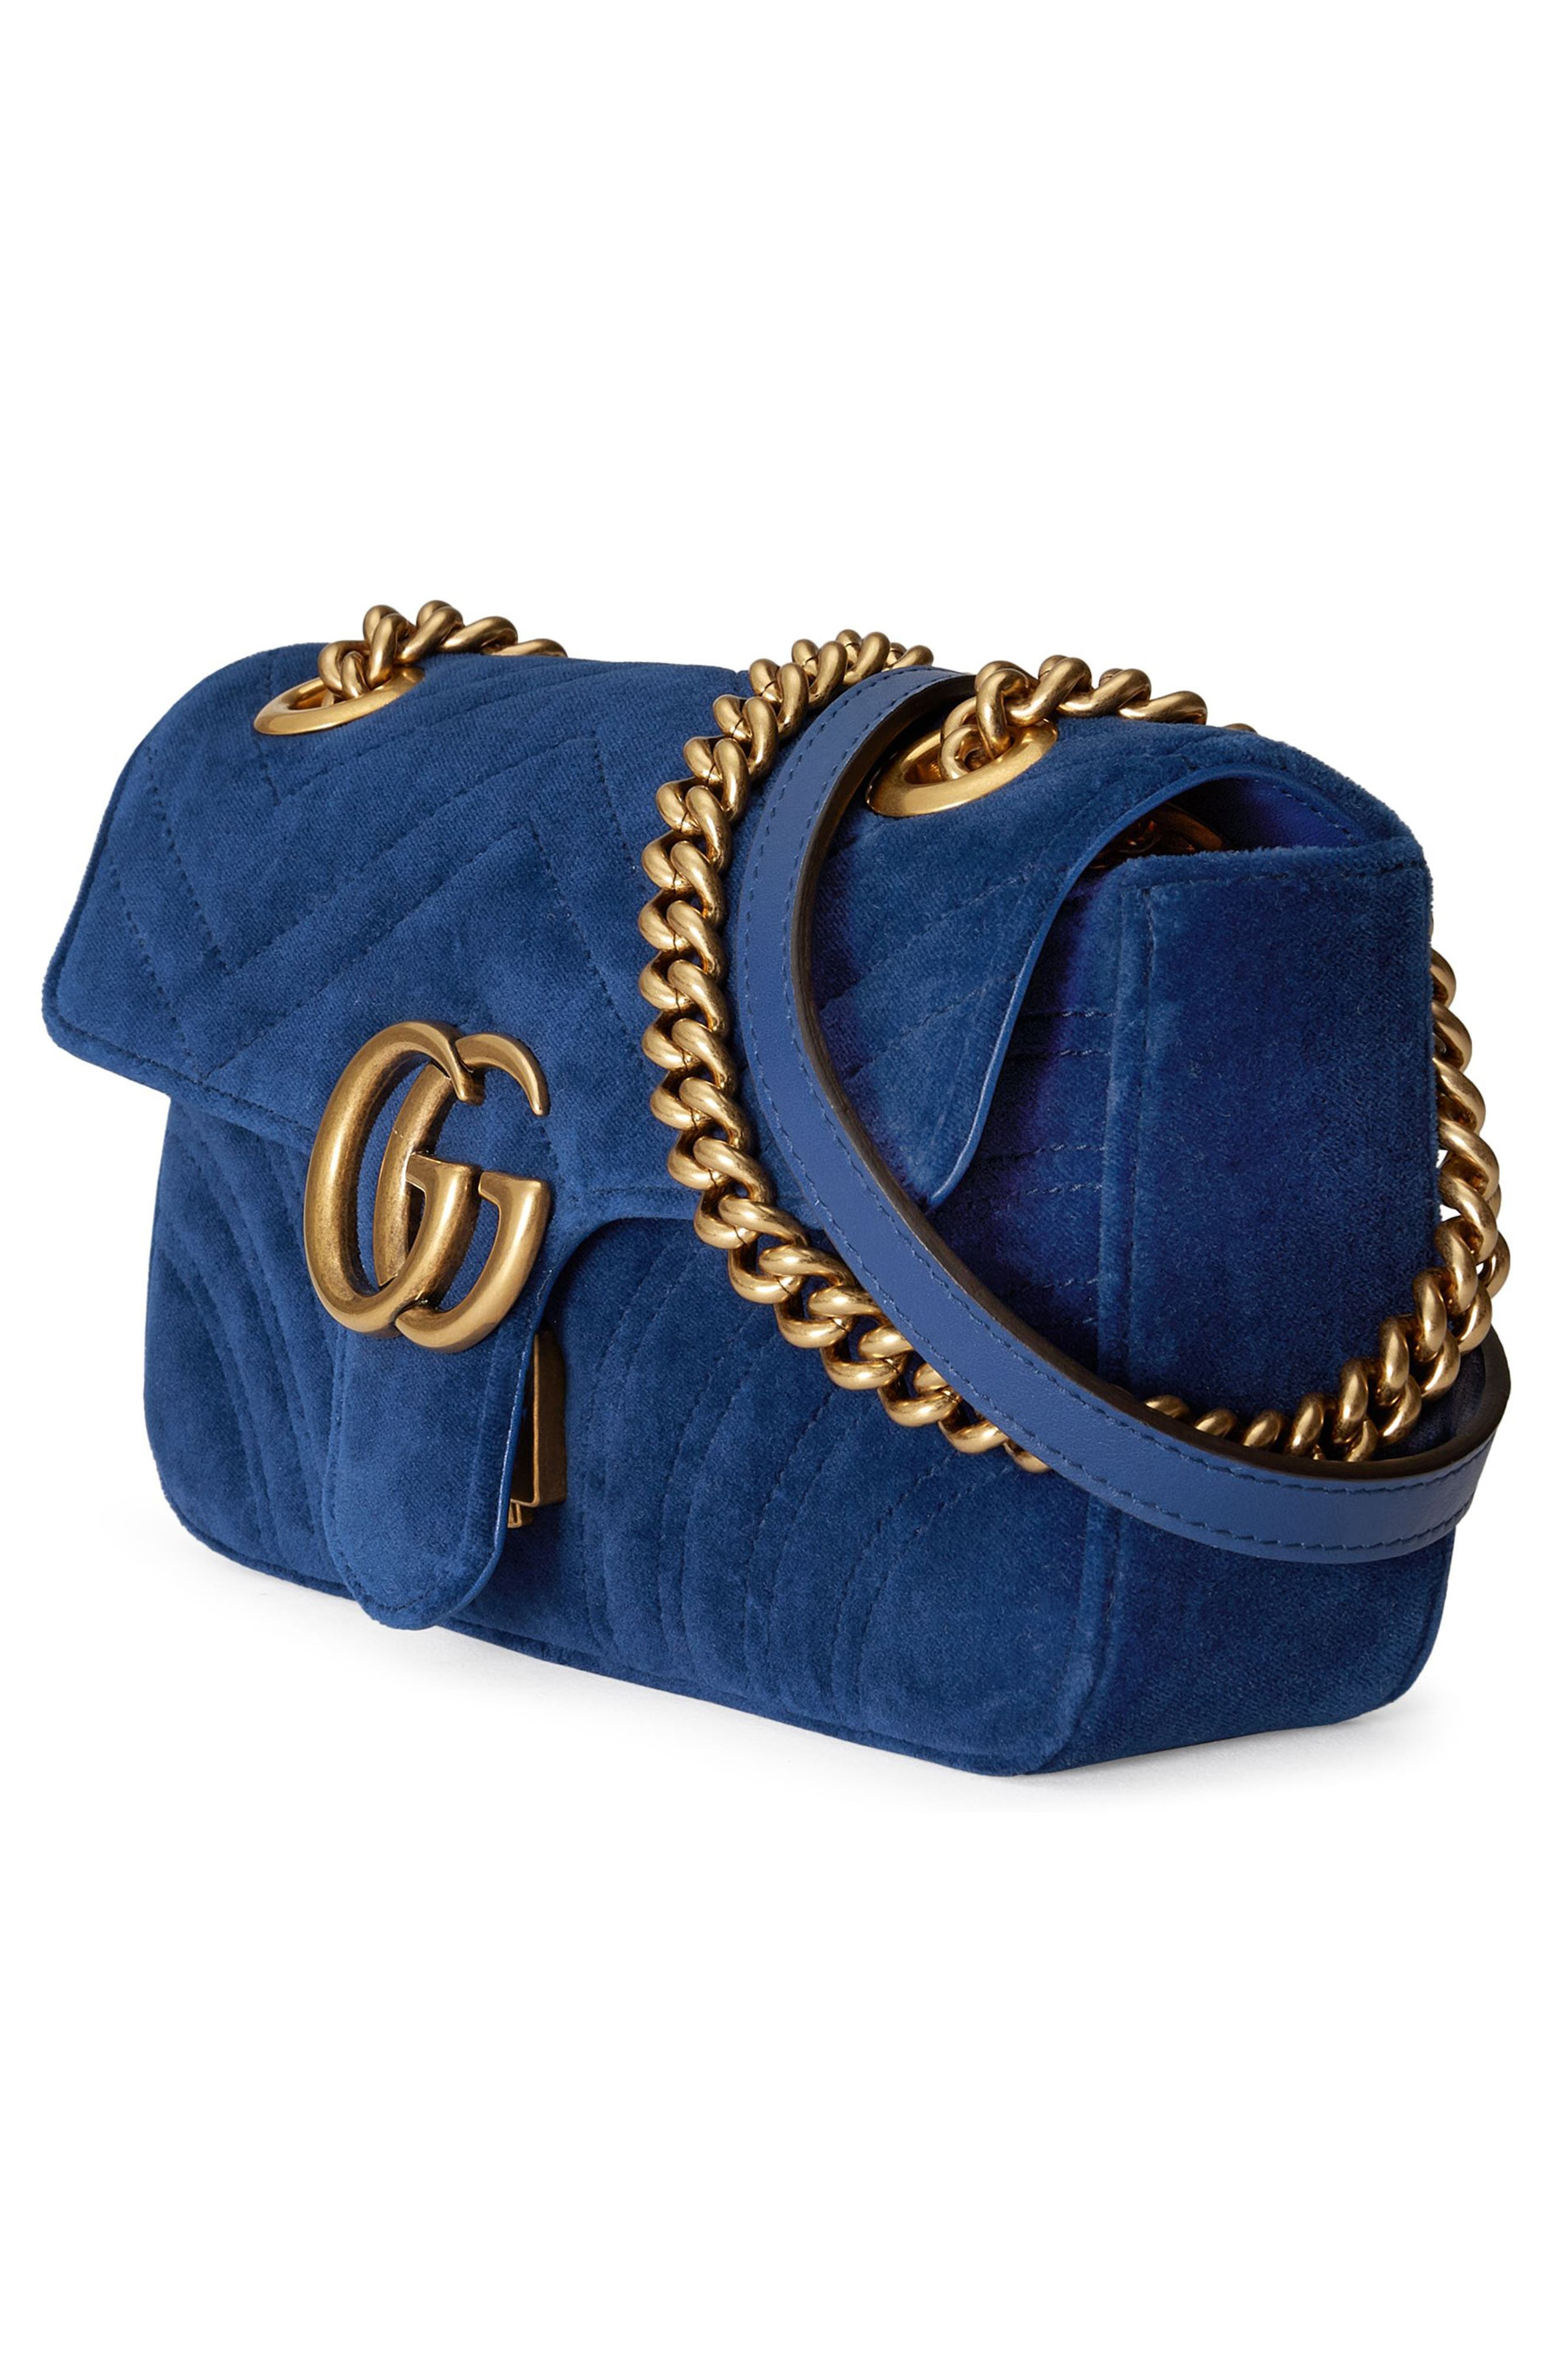 Small GG Marmont 2.0 Matelassé Velvet Shoulder Bag,                             Alternate thumbnail 4, color,                             COBALT